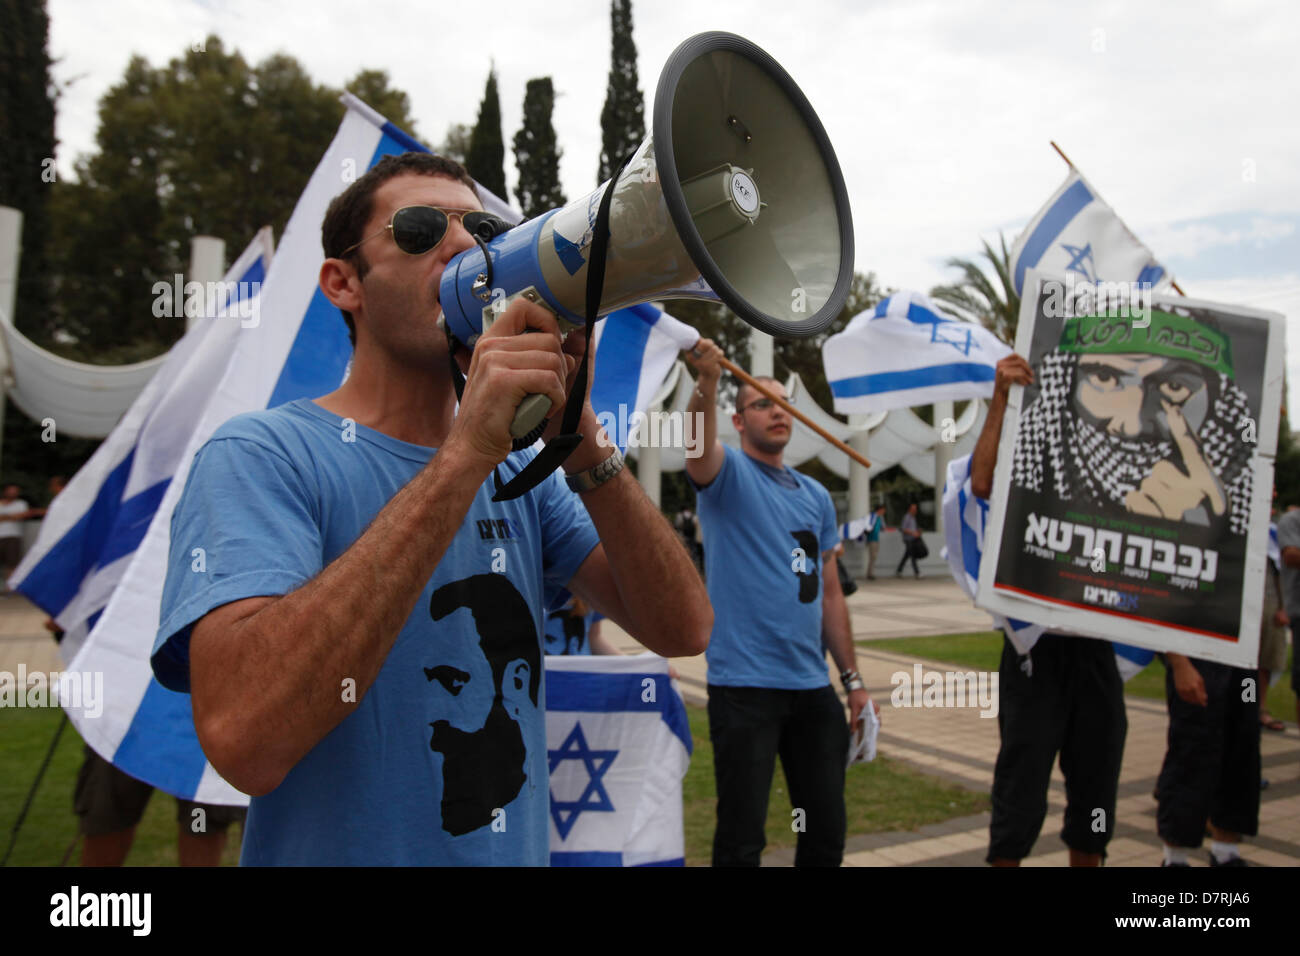 Israeli Right wing activists shouting anti Palestinian slogans during a demonstration against a ceremony commemorating - Stock Image